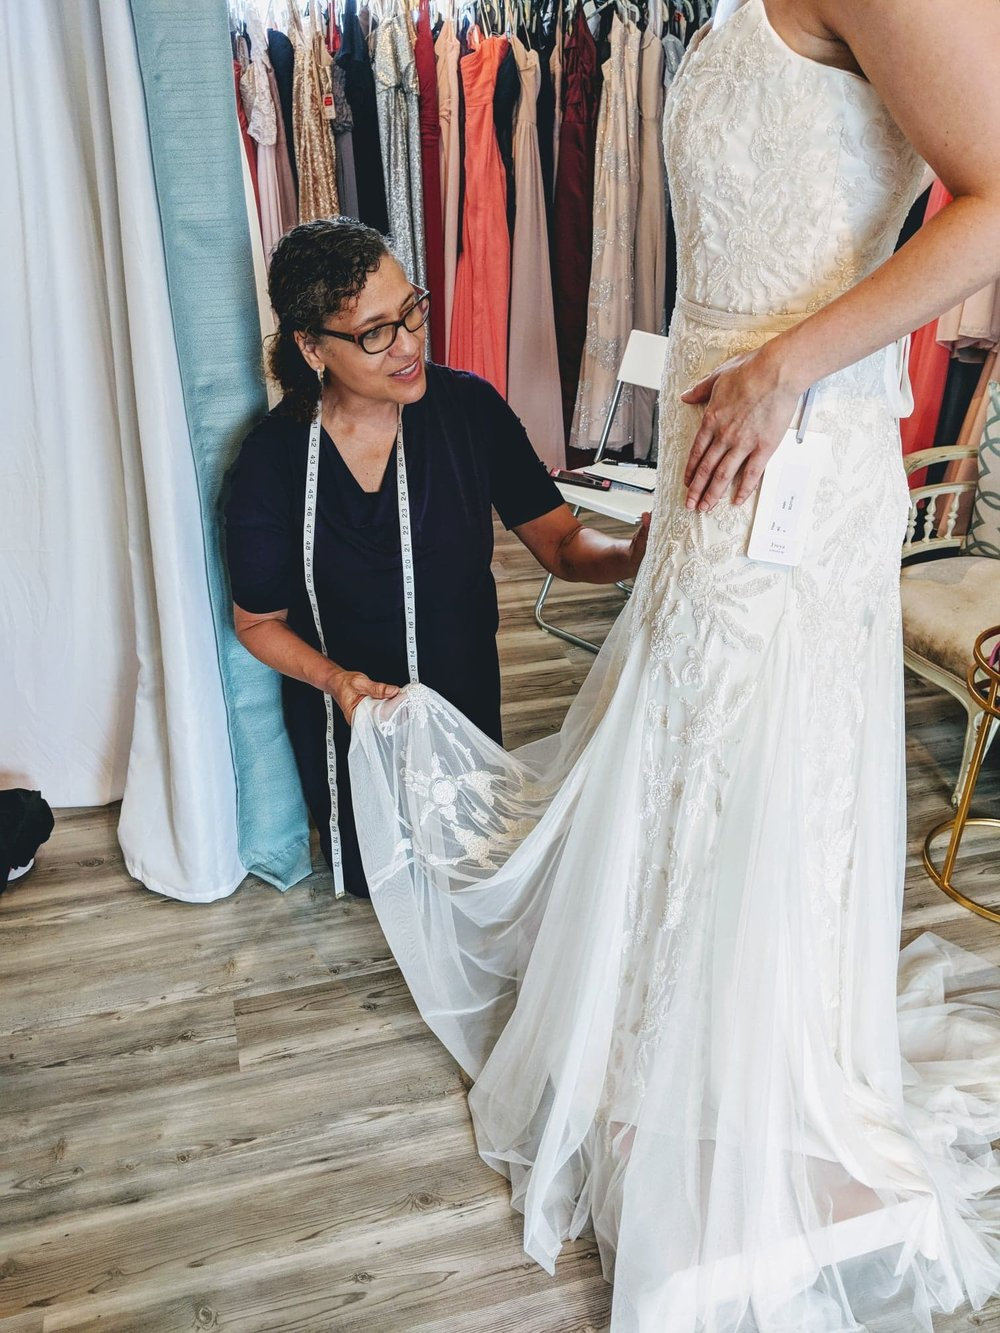 Wanda Bannerman - Ms Wanda is our loving and incredibly skillful seamstress! With a fine arts background and over 30 years of bridal dress experience, she brings a detailed eye to each dress with a mindfulness for every bride.